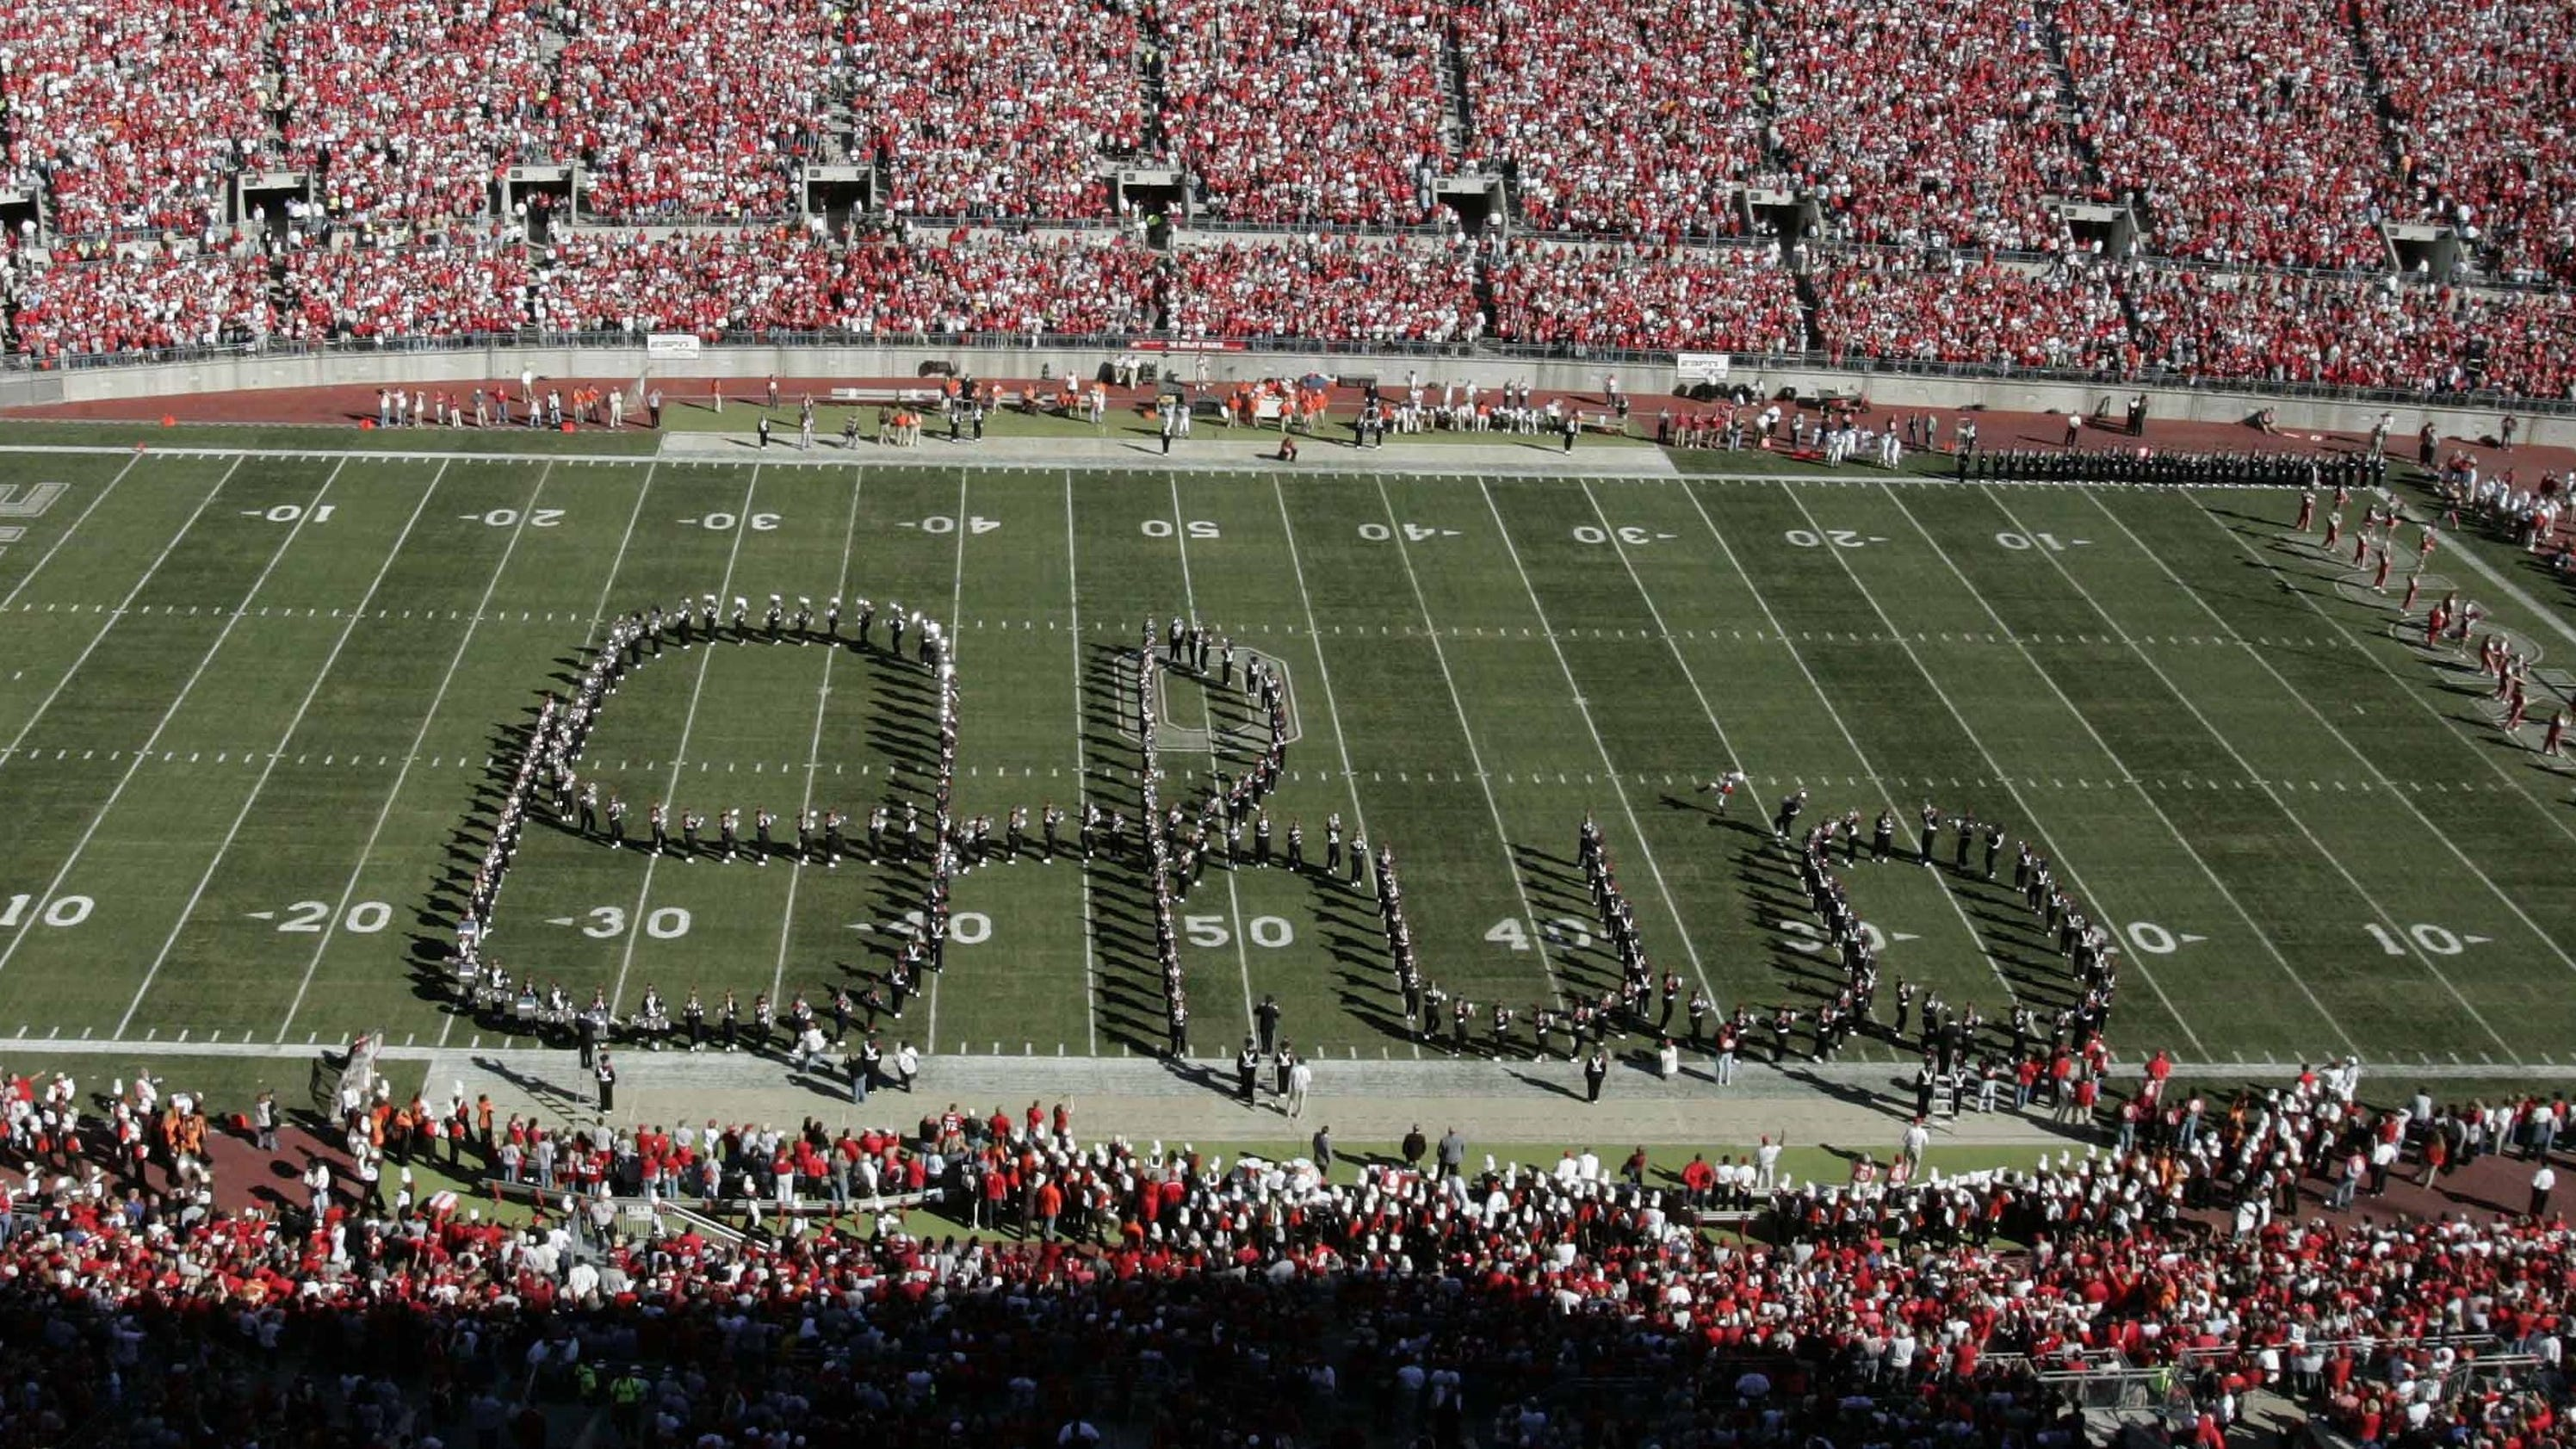 Ootball__bowling_green_at_ohio_state_130507691